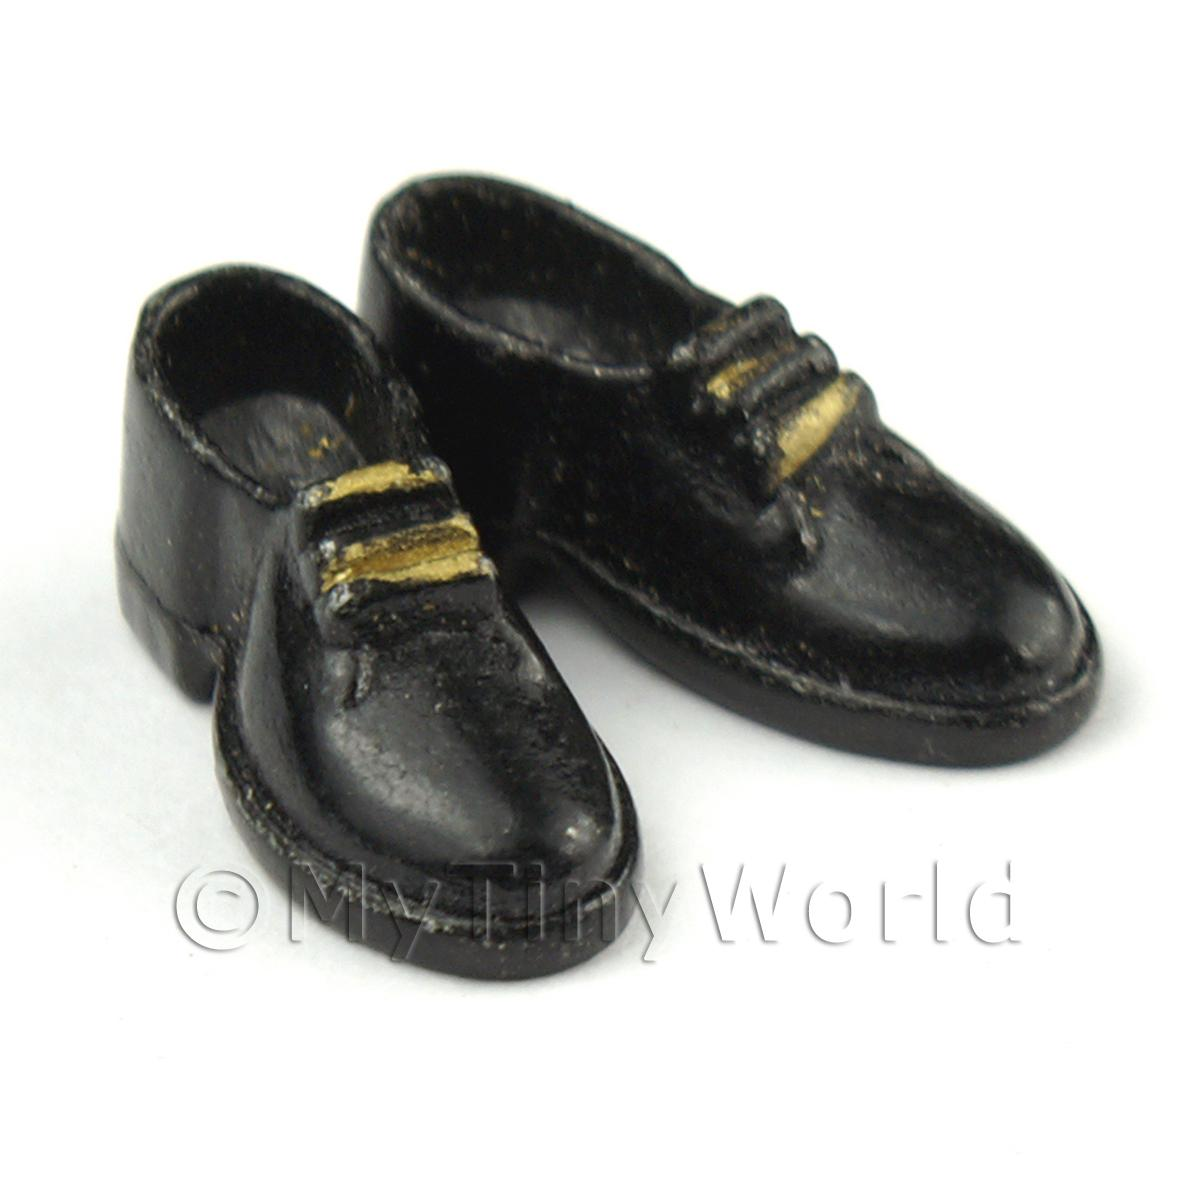 Dolls House Miniature Resin Black And Gold Mens Shoes